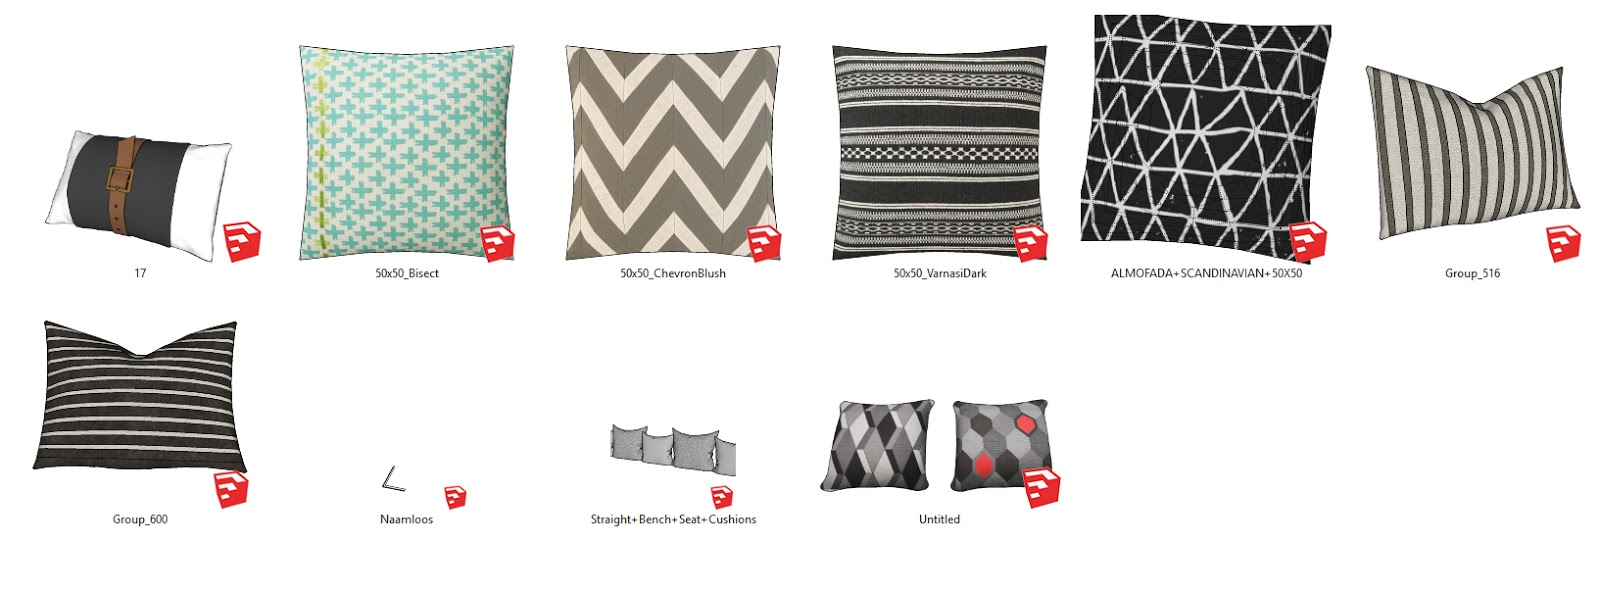 Free Sketchup Model  Throw Pillow Collection - FREE STUFFS FOR ... f44c89eda